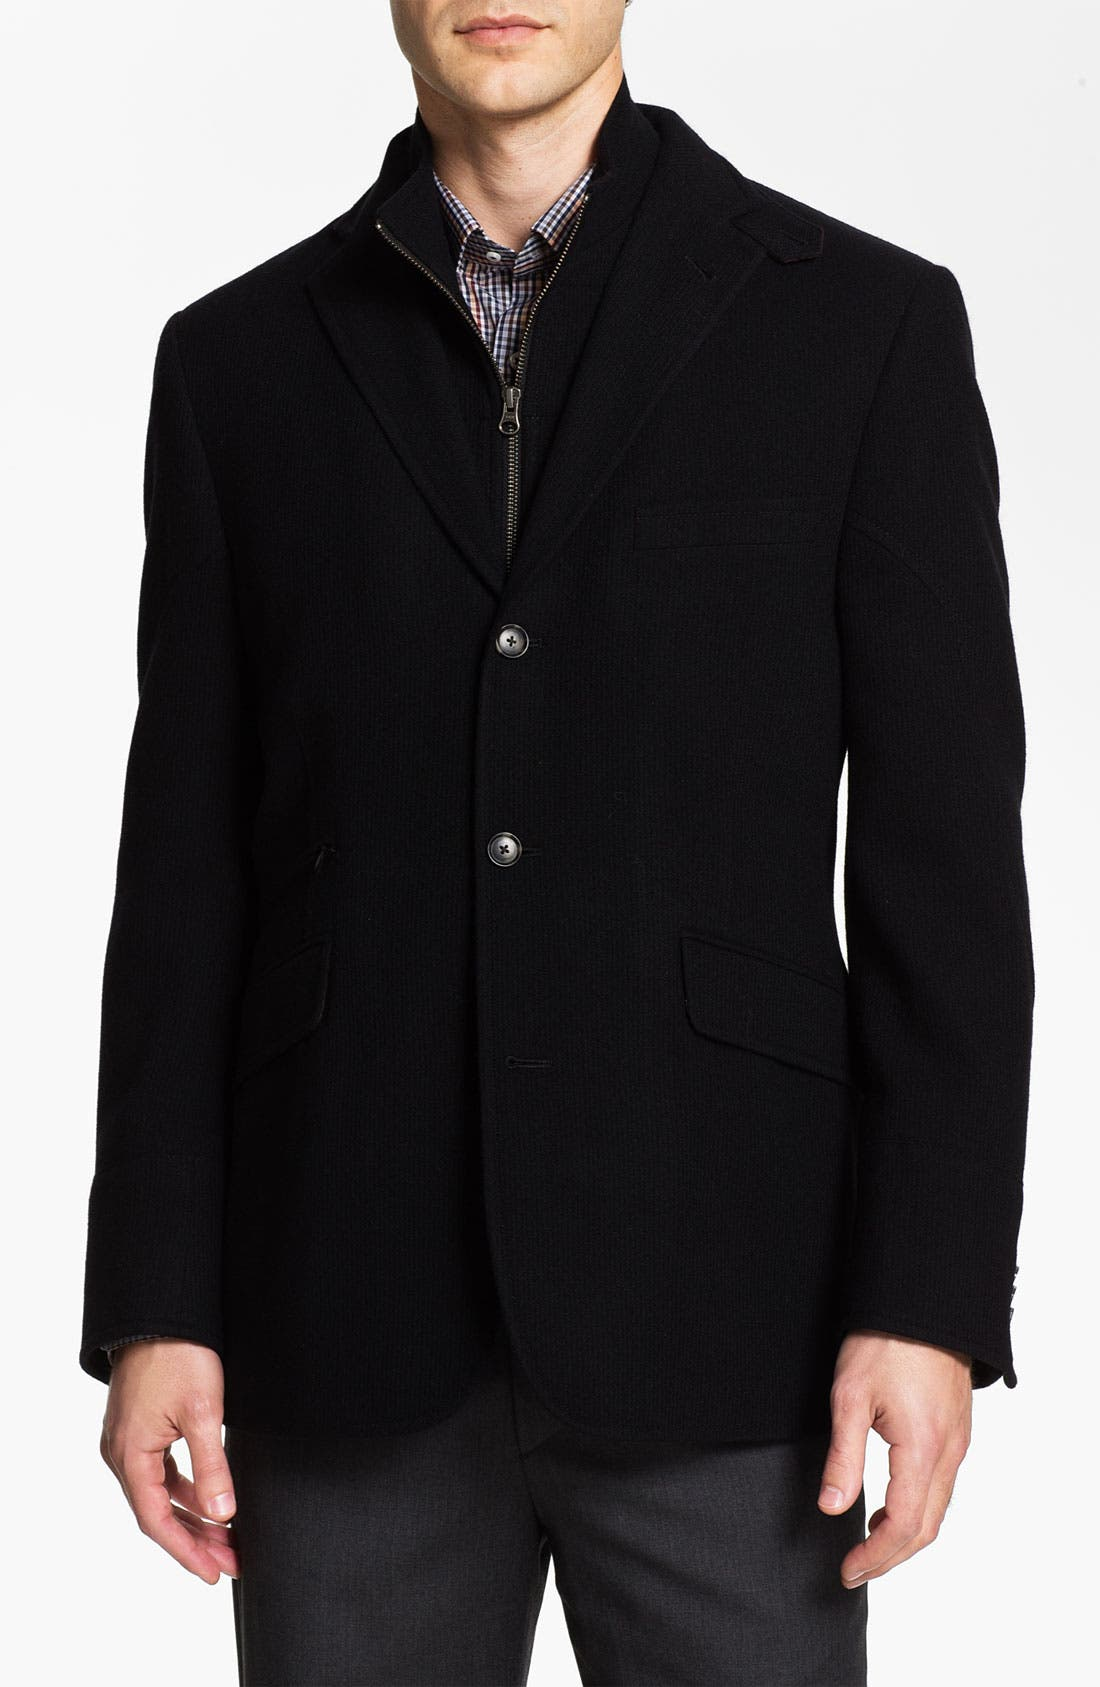 Main Image - Kroon 'Ritchie' Wool Blend Sportcoat